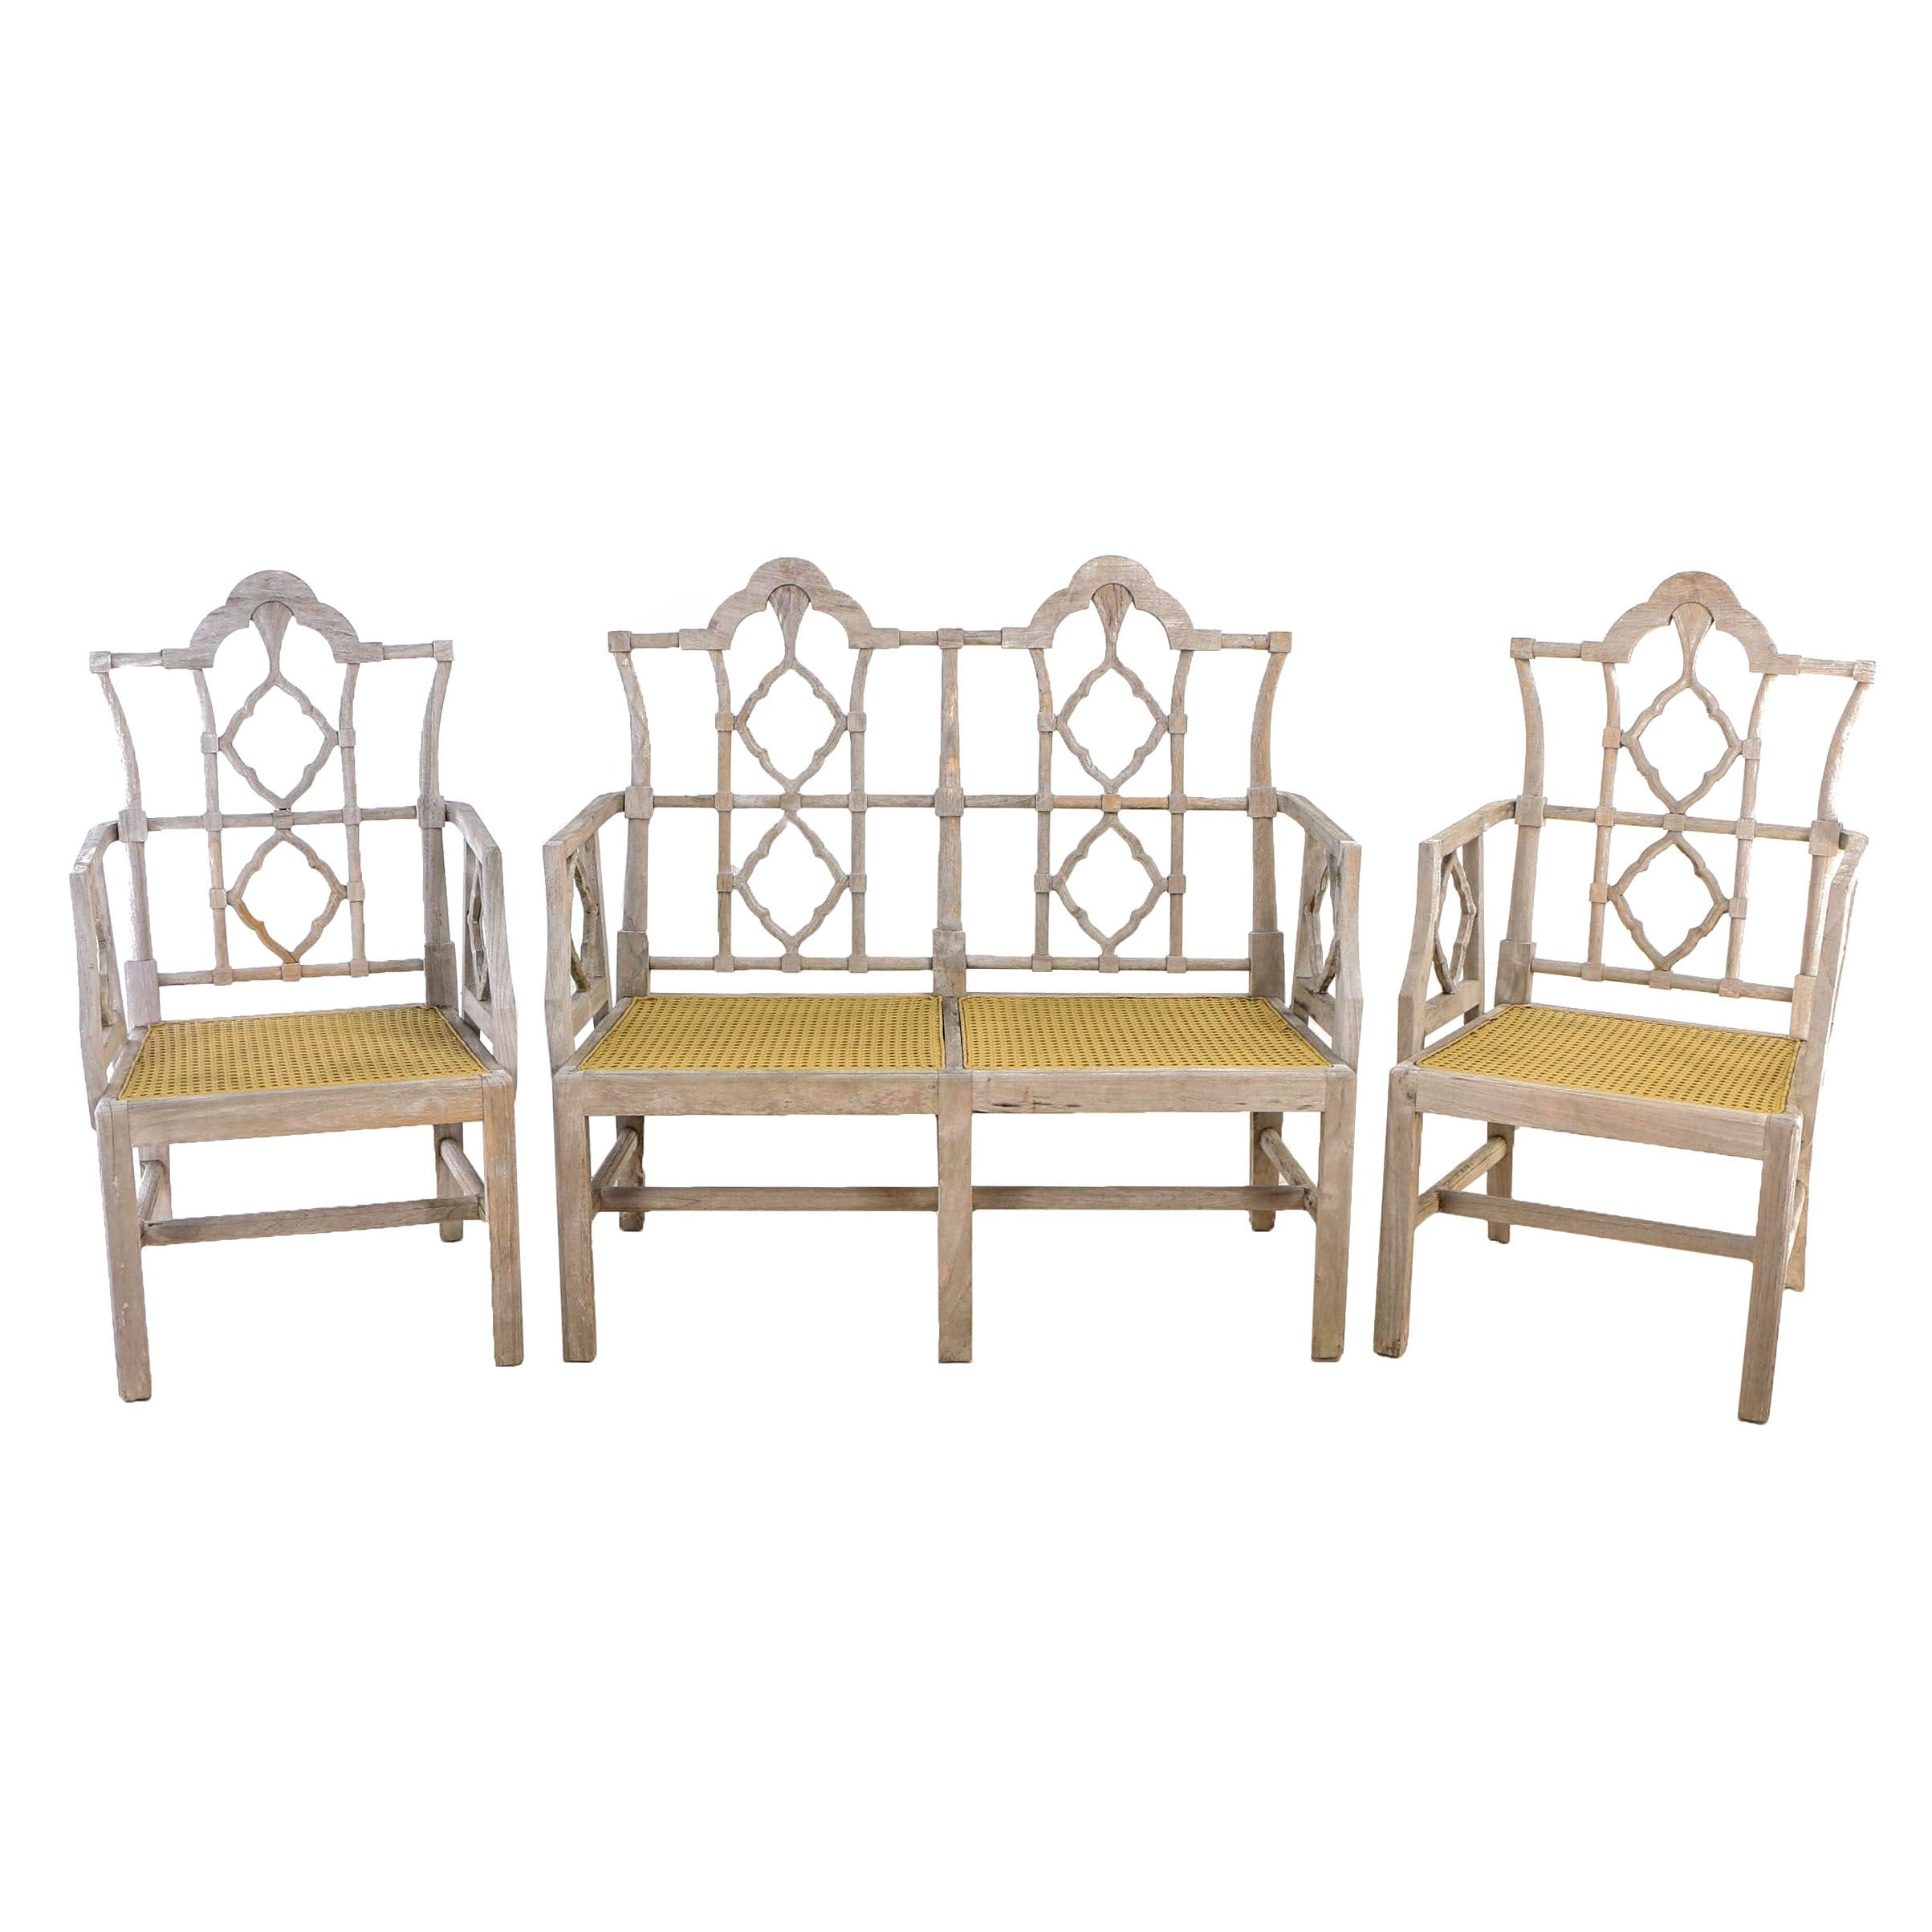 Furniture Classics Limited, Teak and Caned Three-Piece Patio Seating Group